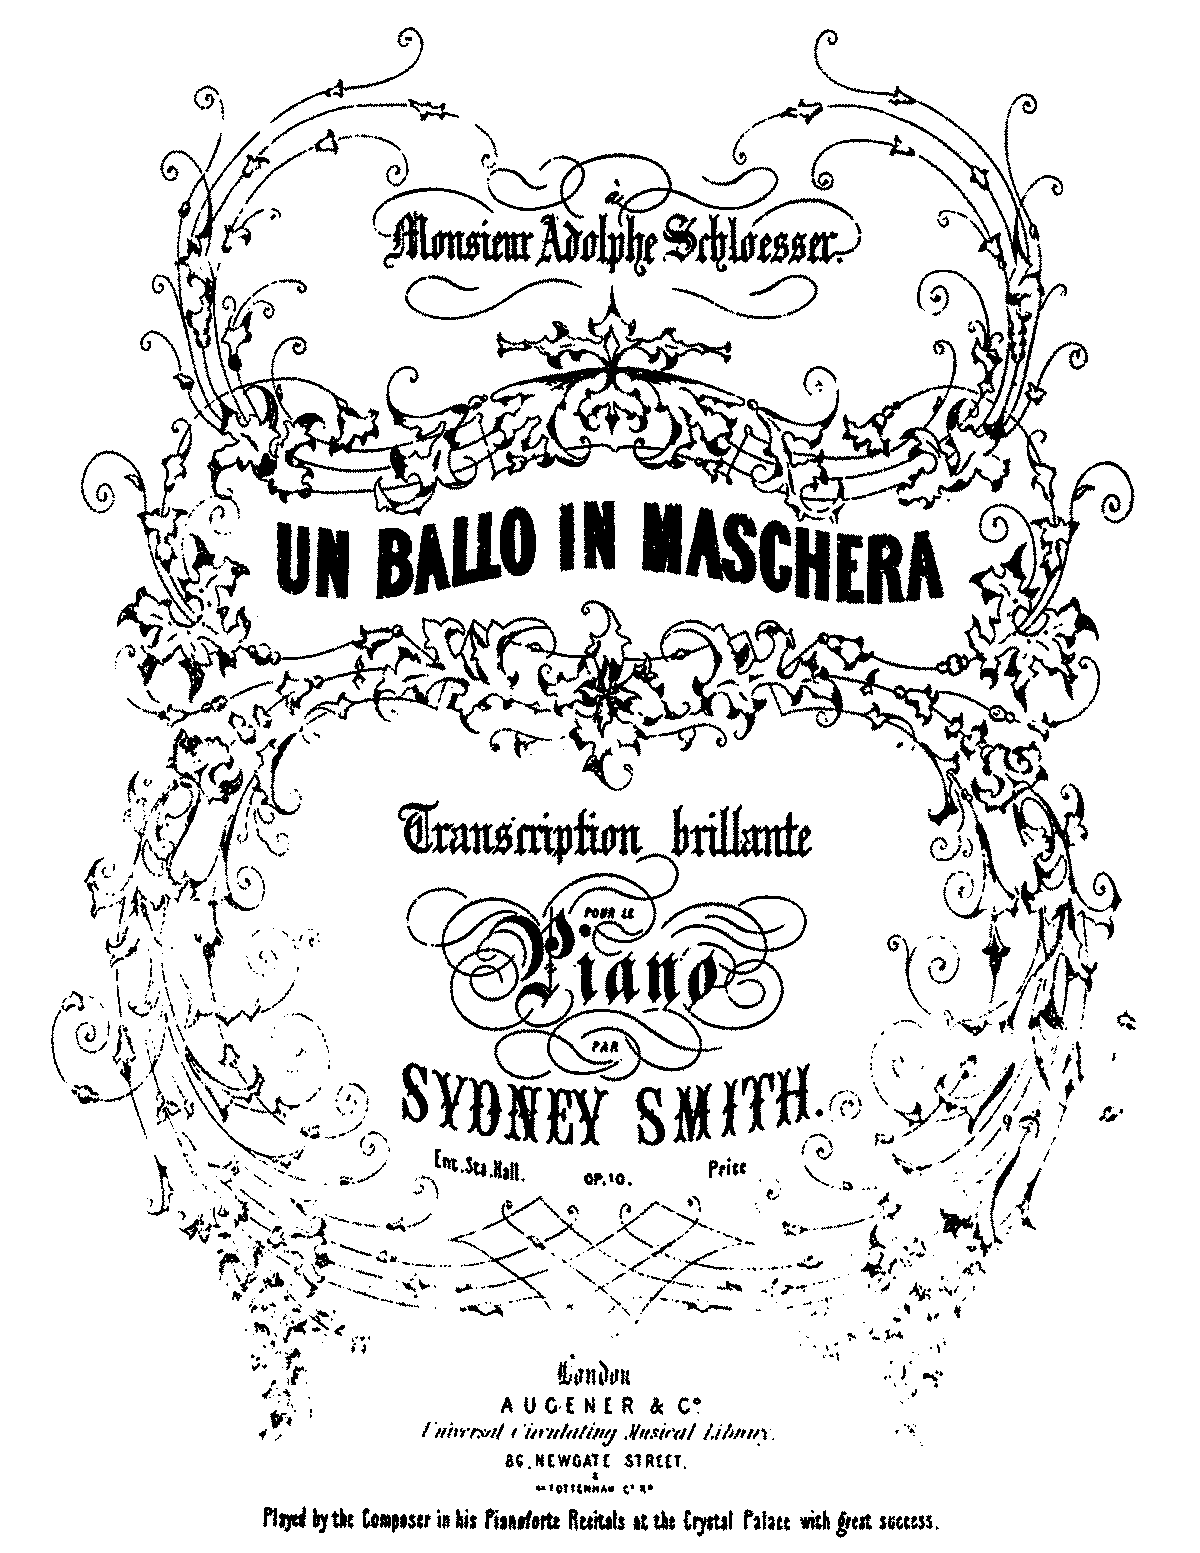 PMLP112930-Smith, Sydney op10 un ballo in maschera.pdf